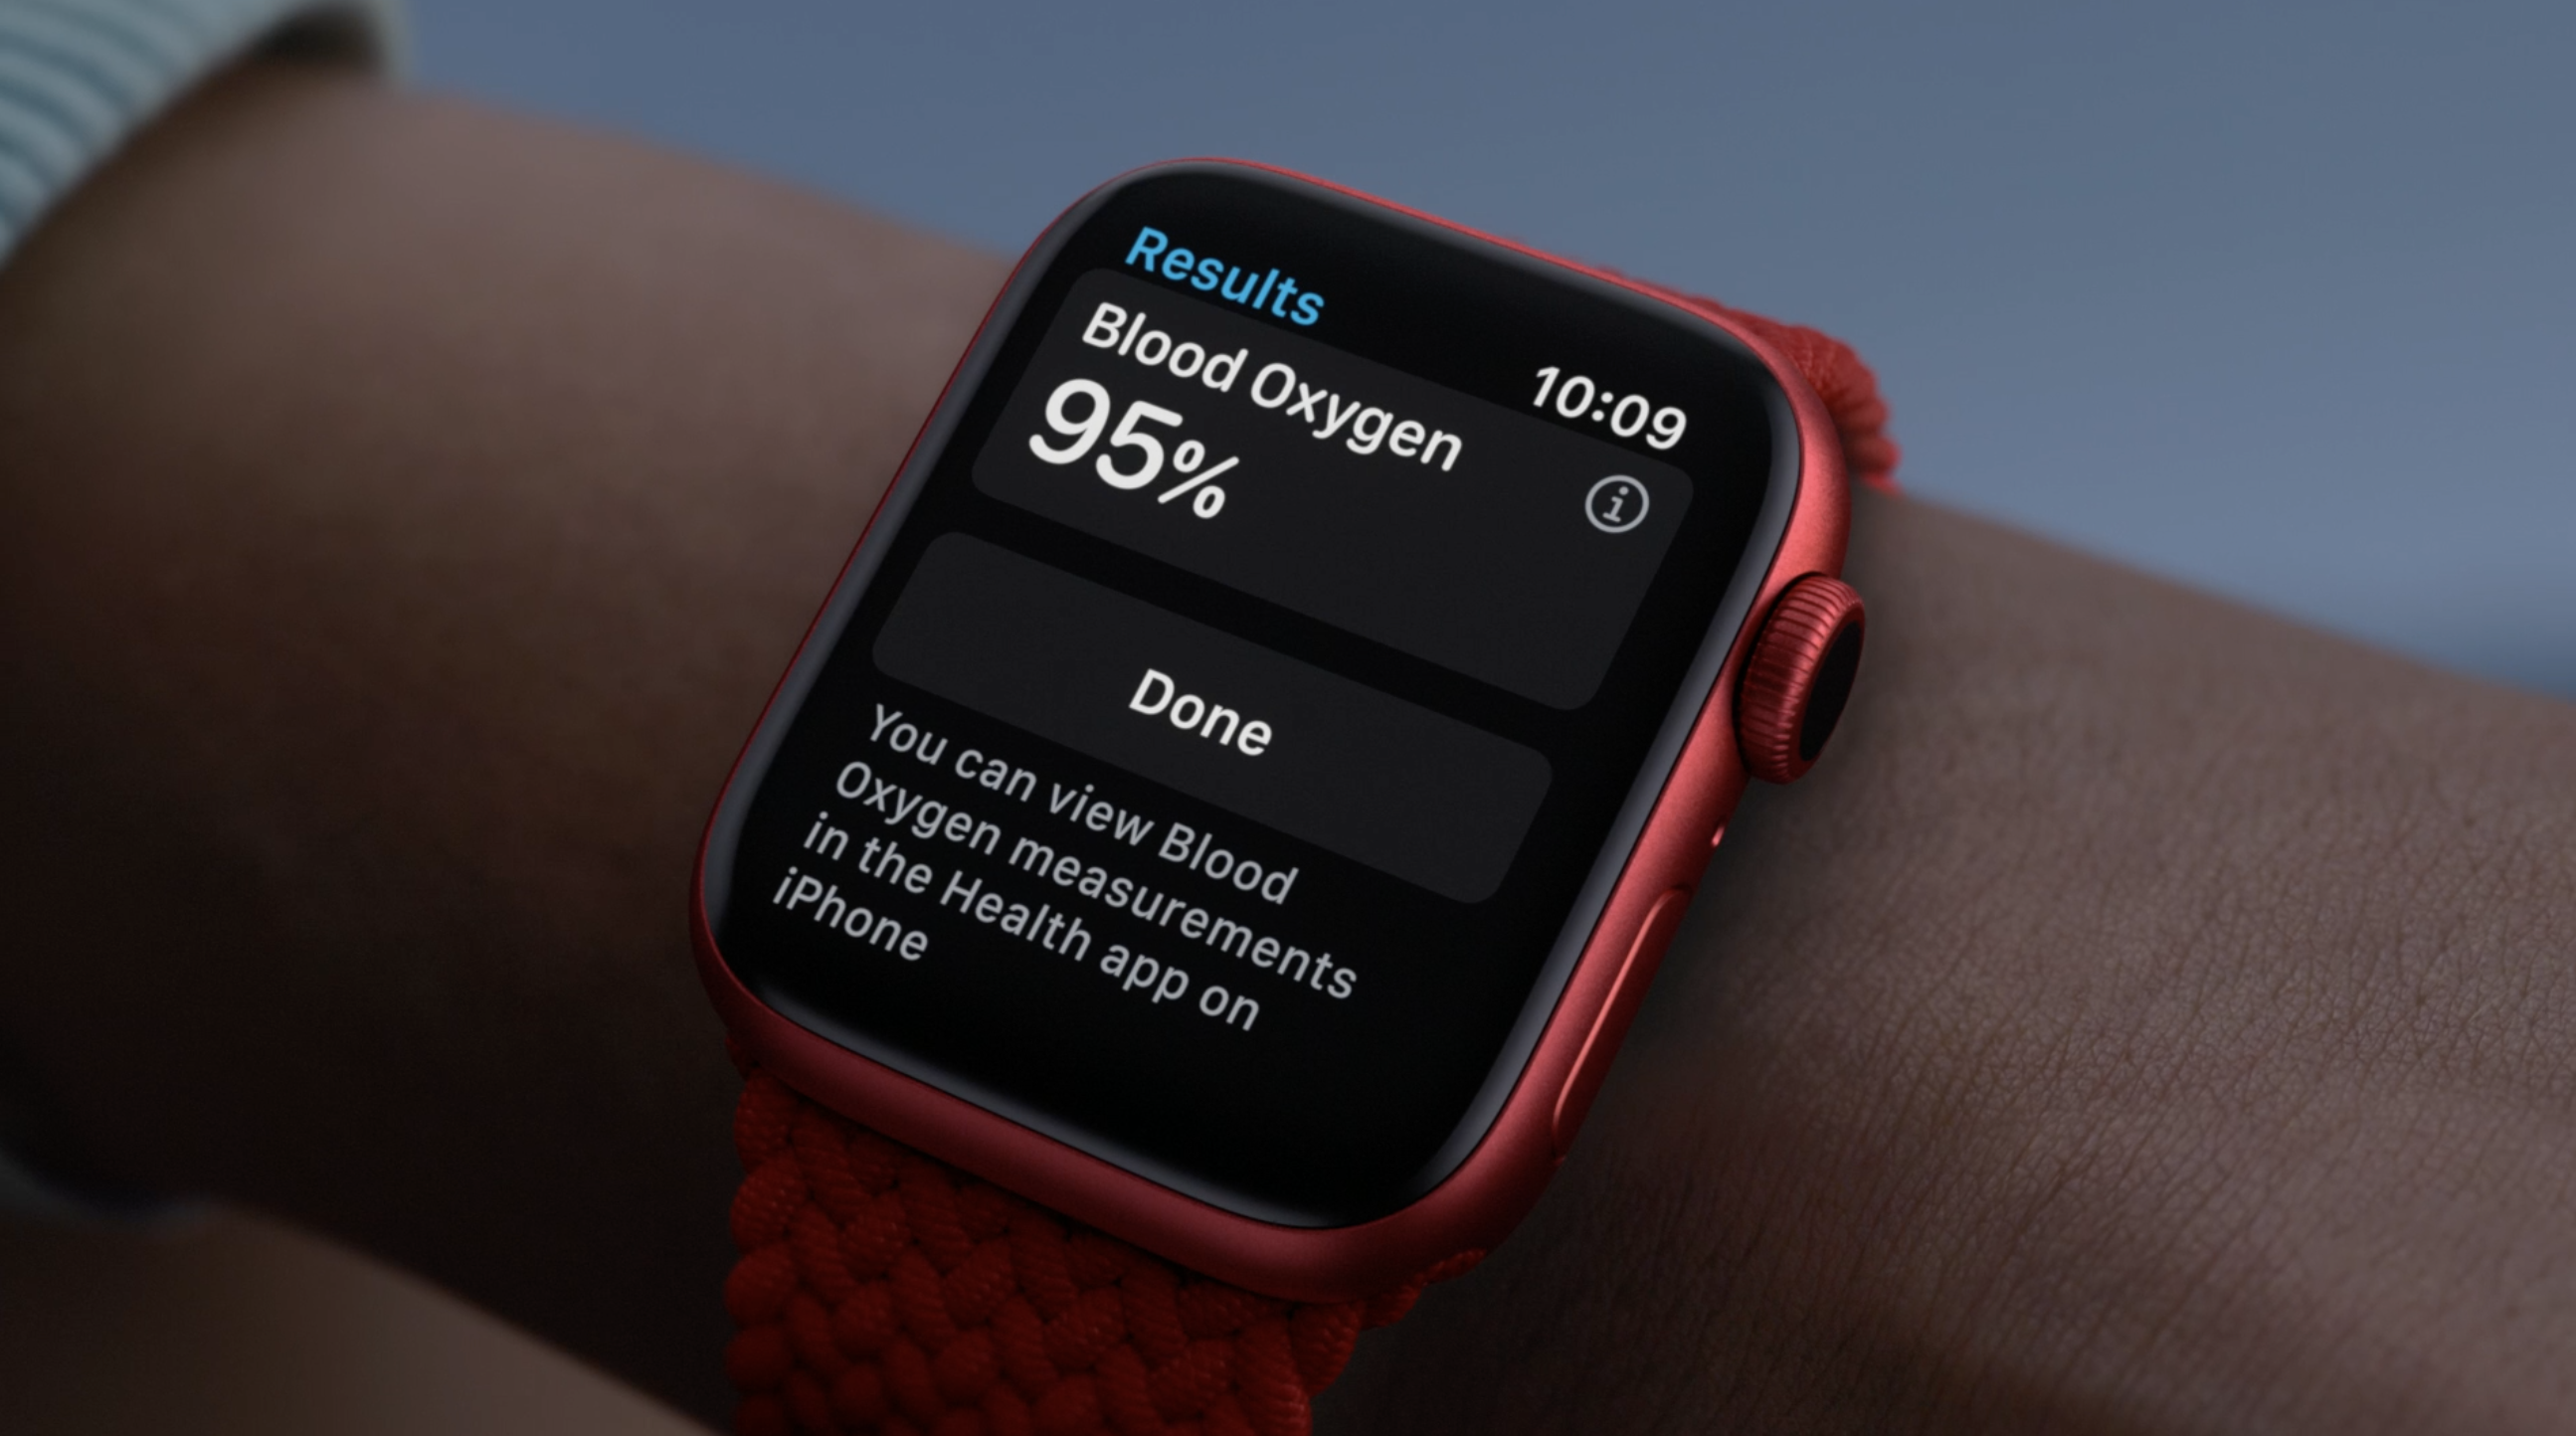 photo of PSA: watchOS 7.1 beta doesn't include new watch faces and Blood Oxygen app yet [U: Fixed] image